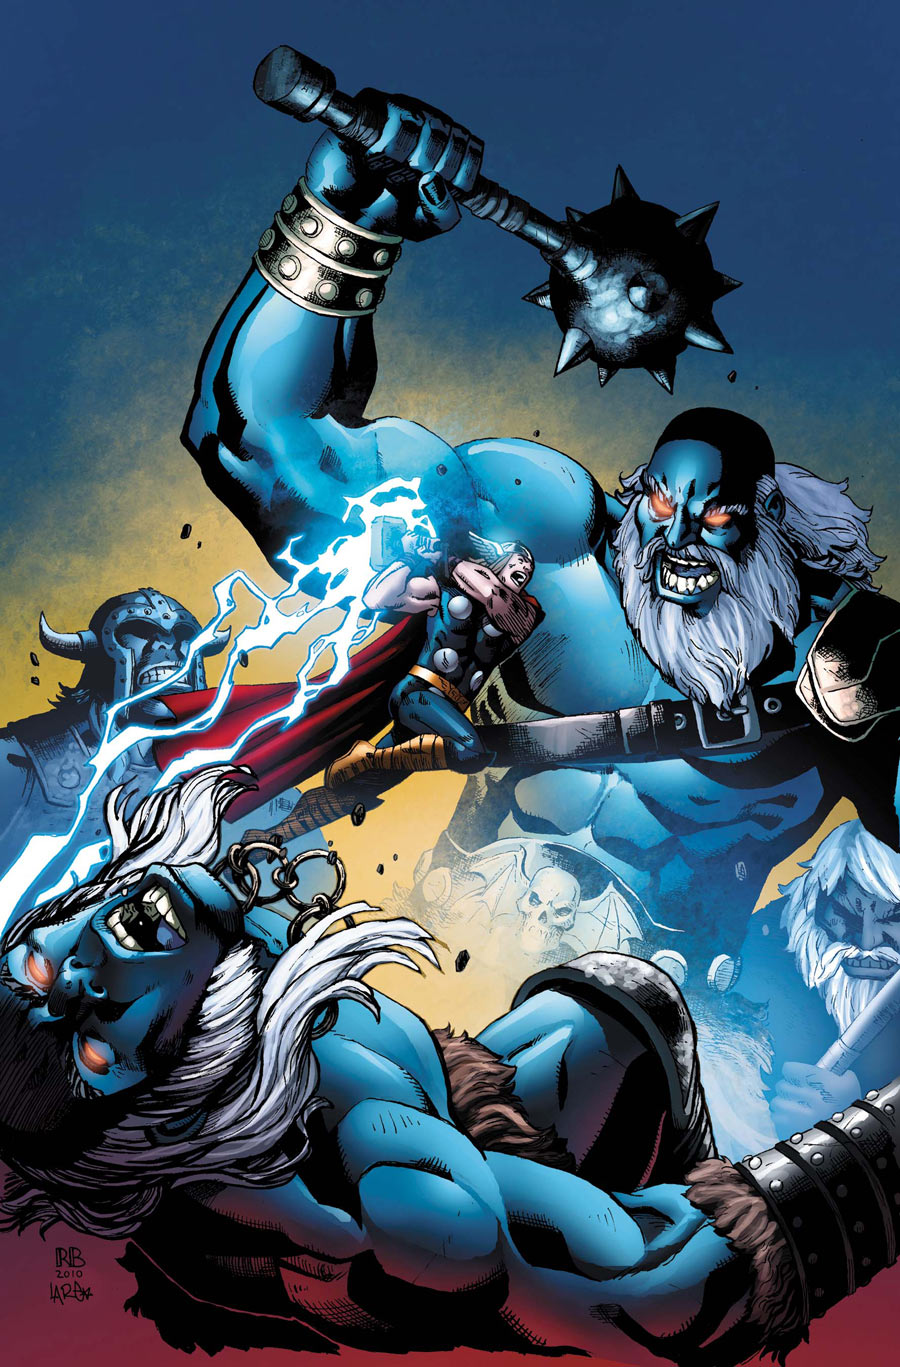 Thor vs Frost Giants colored